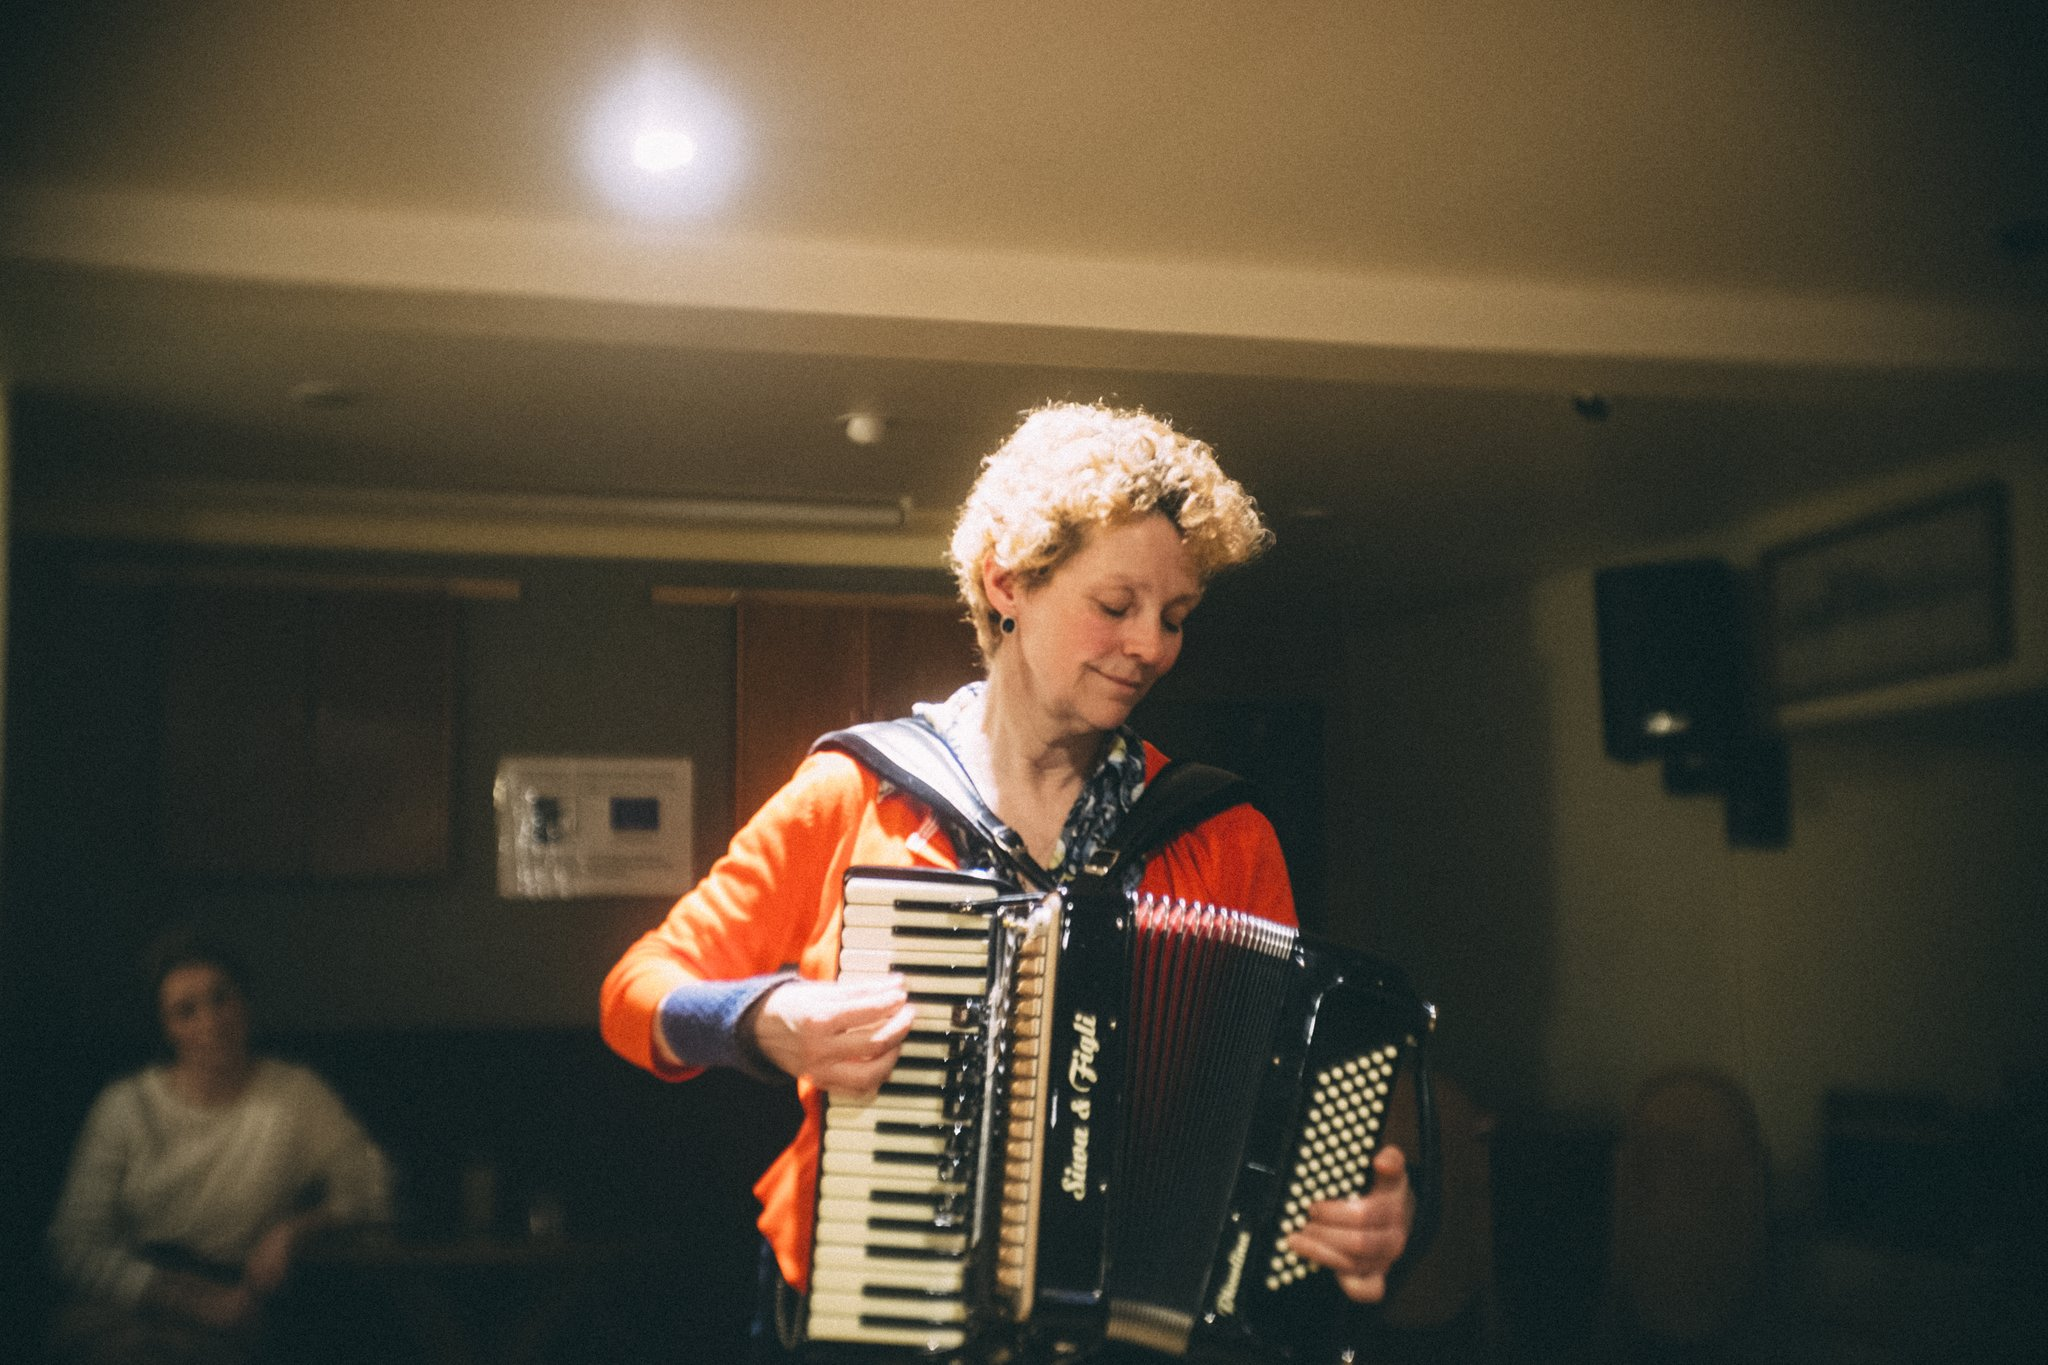 Gabrielle Barnby, Julia McGhee, National Theatre Scotland, One Day to Play, poetry, dance., Open mic, Karen Tweed, THE CHEVIOT, THE STAG AND THE BLACK, BLACK OIL